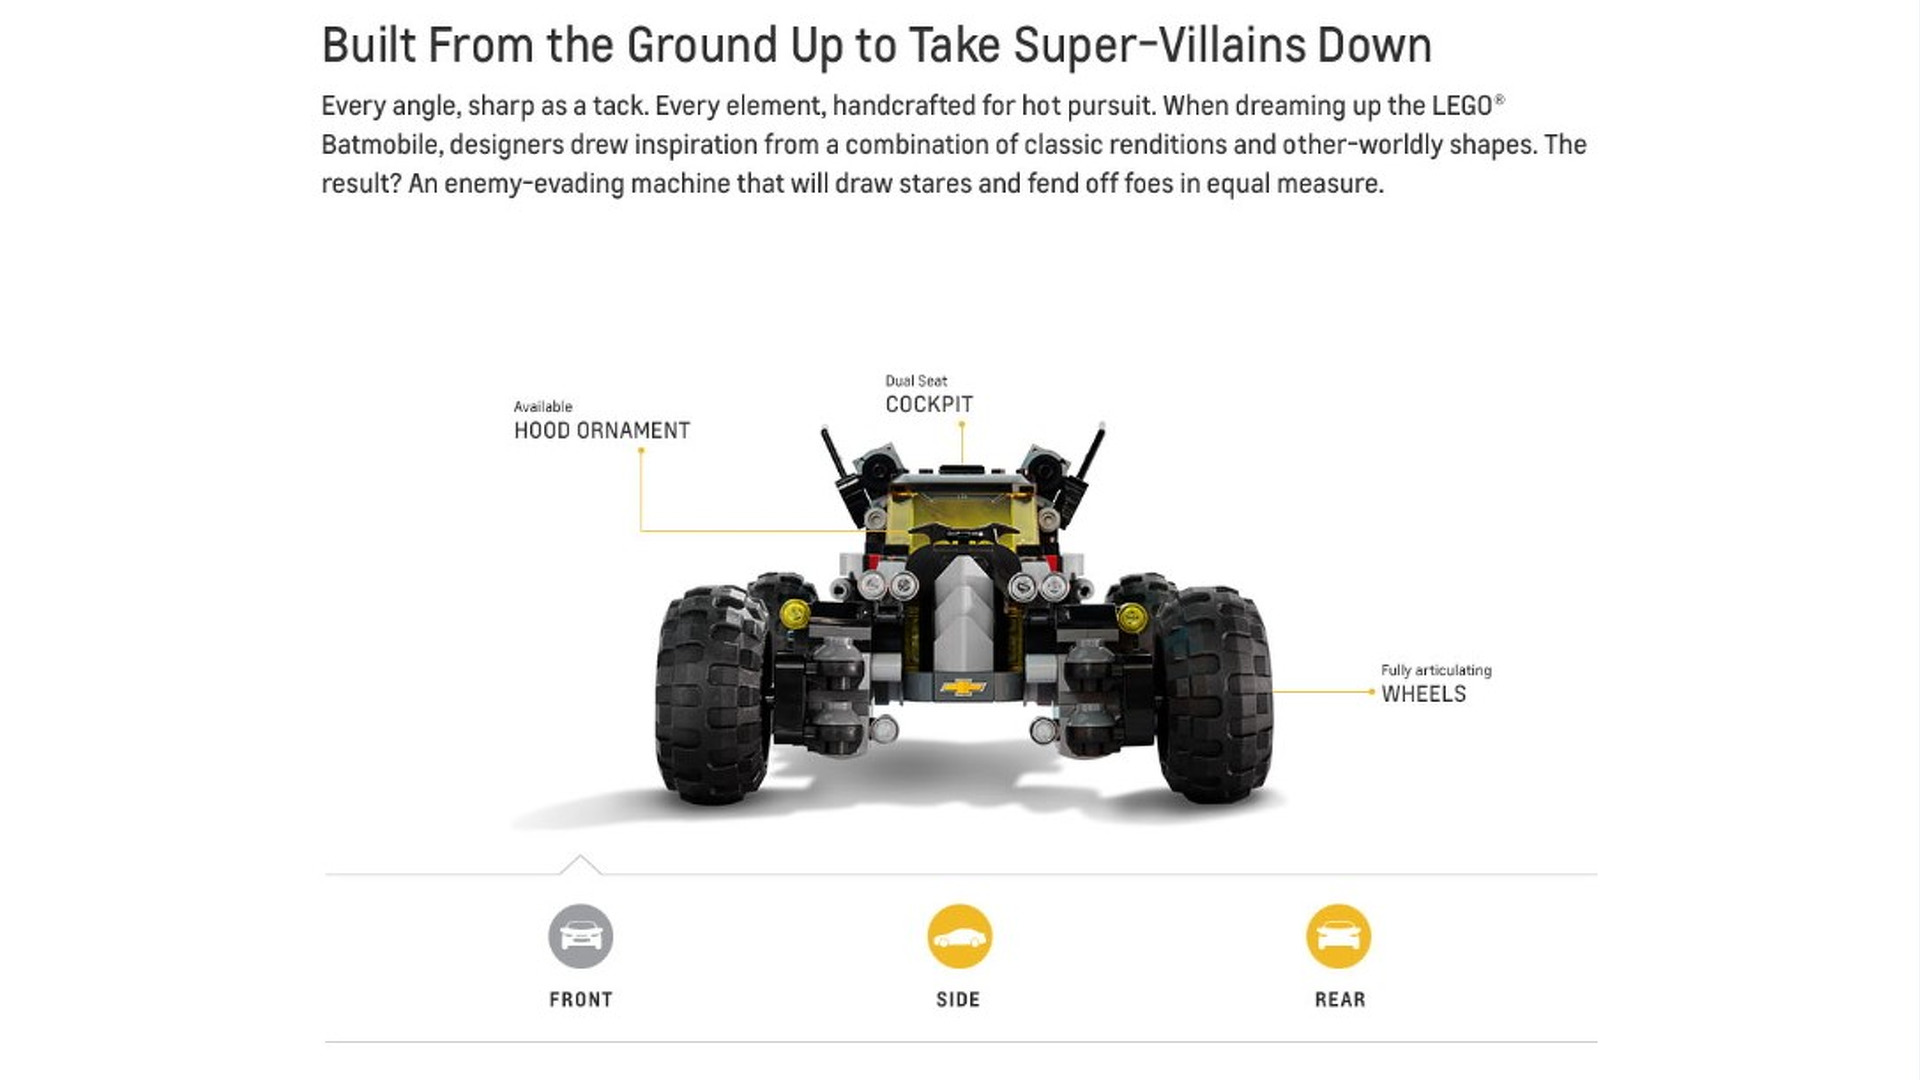 The all-new LEGO® Batmobile from Chevrolet. Learn more at Chevy